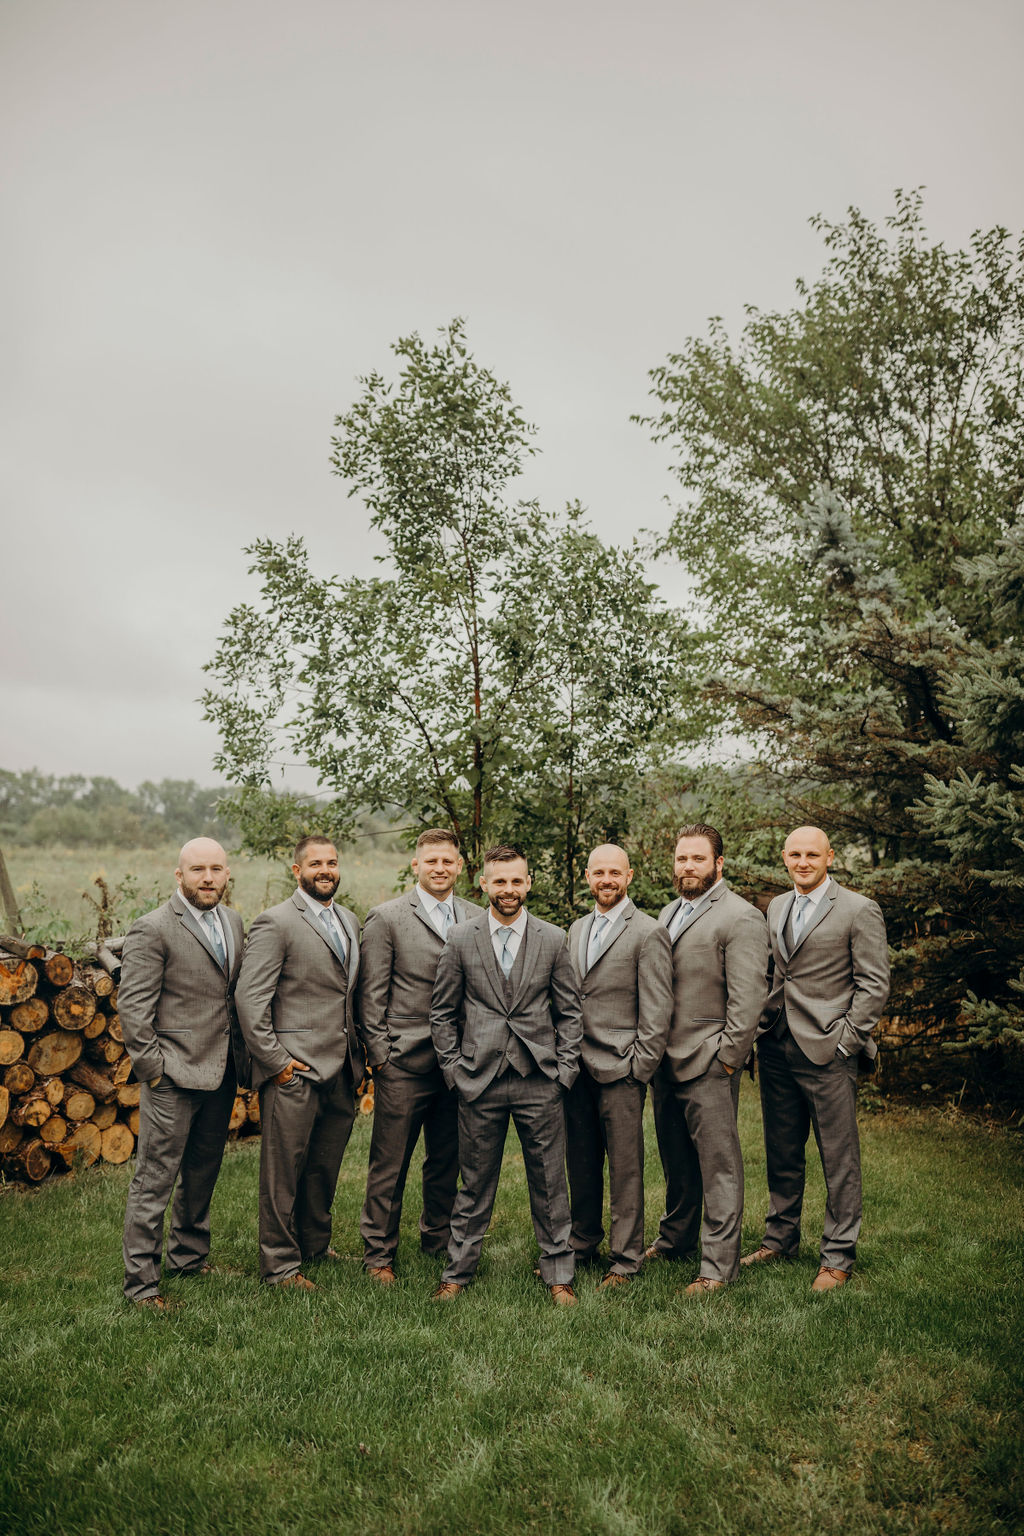 Groomsman standing in front of trees